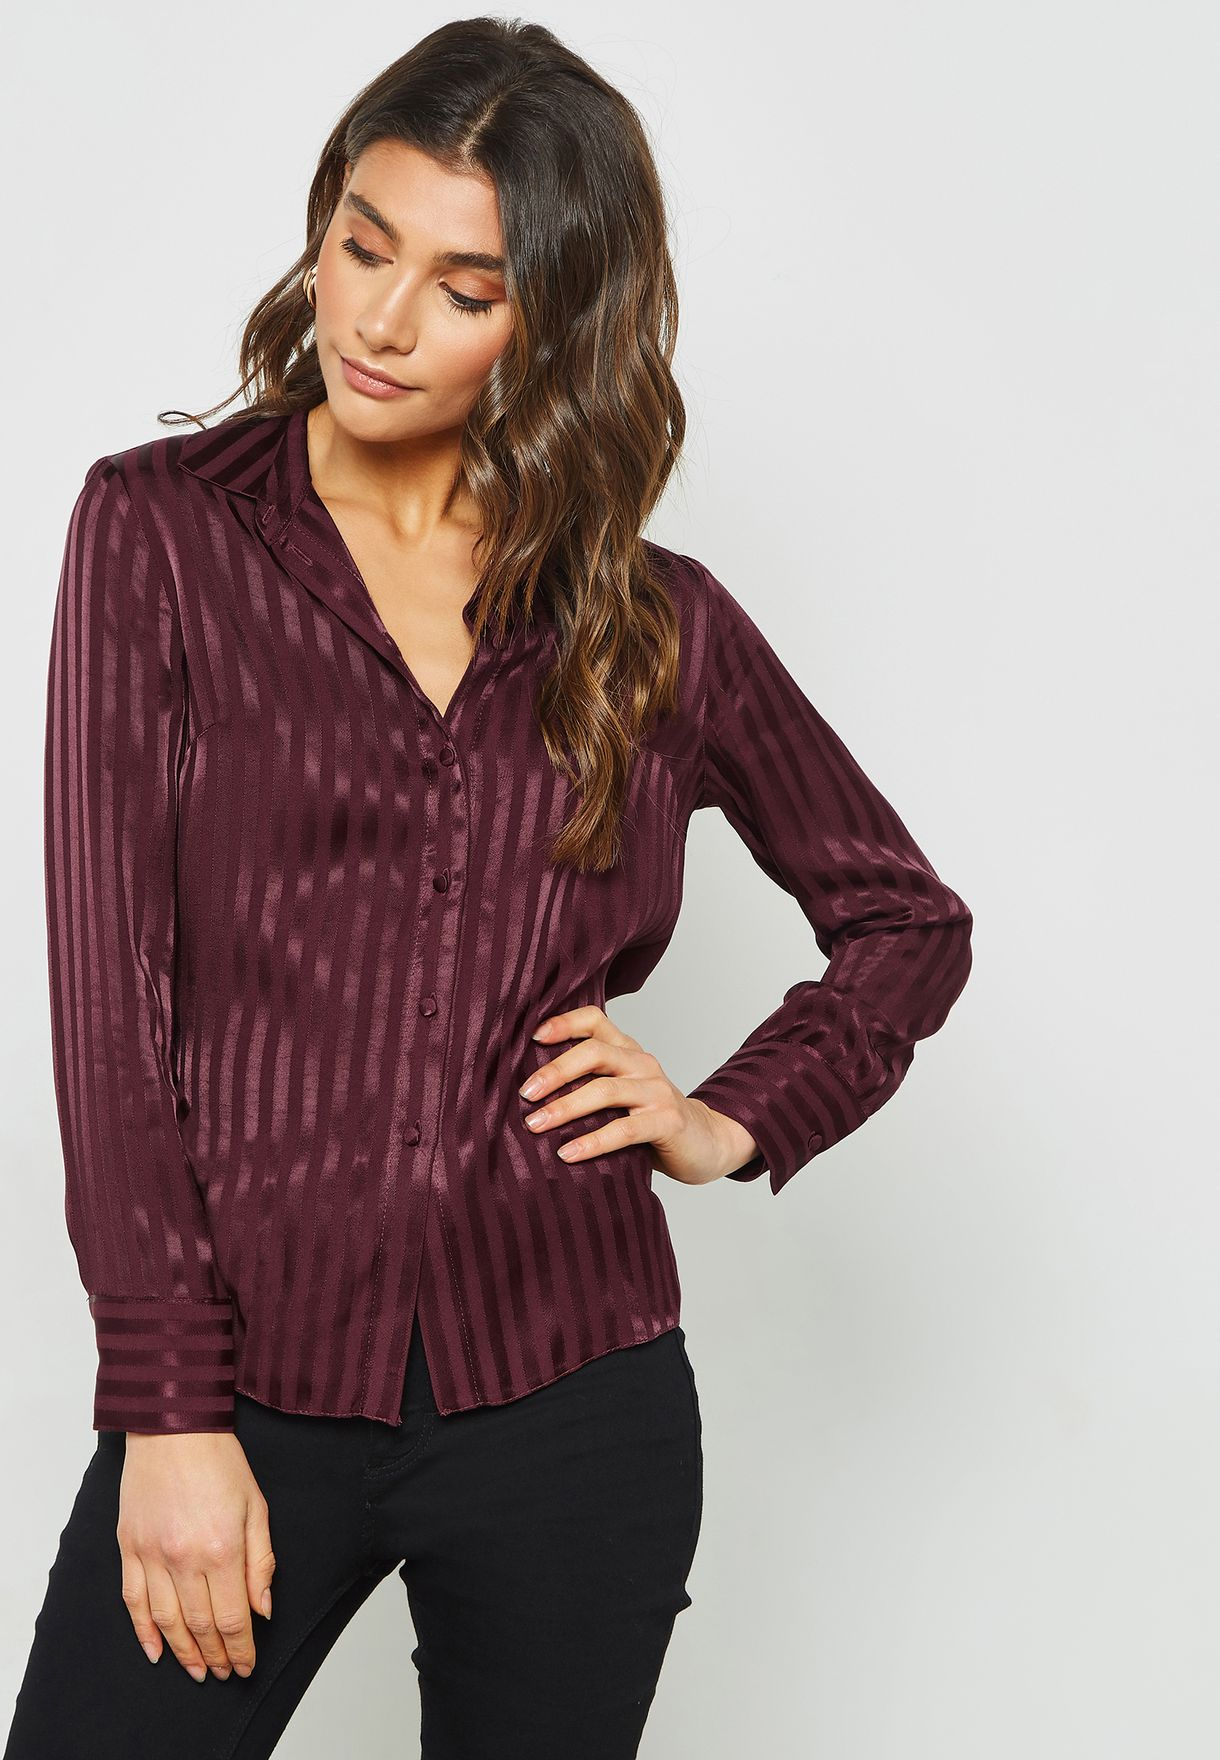 c5164918 Shop Topshop burgundy Long Sleeve Striped Shirt 13K10PWNE for Women ...